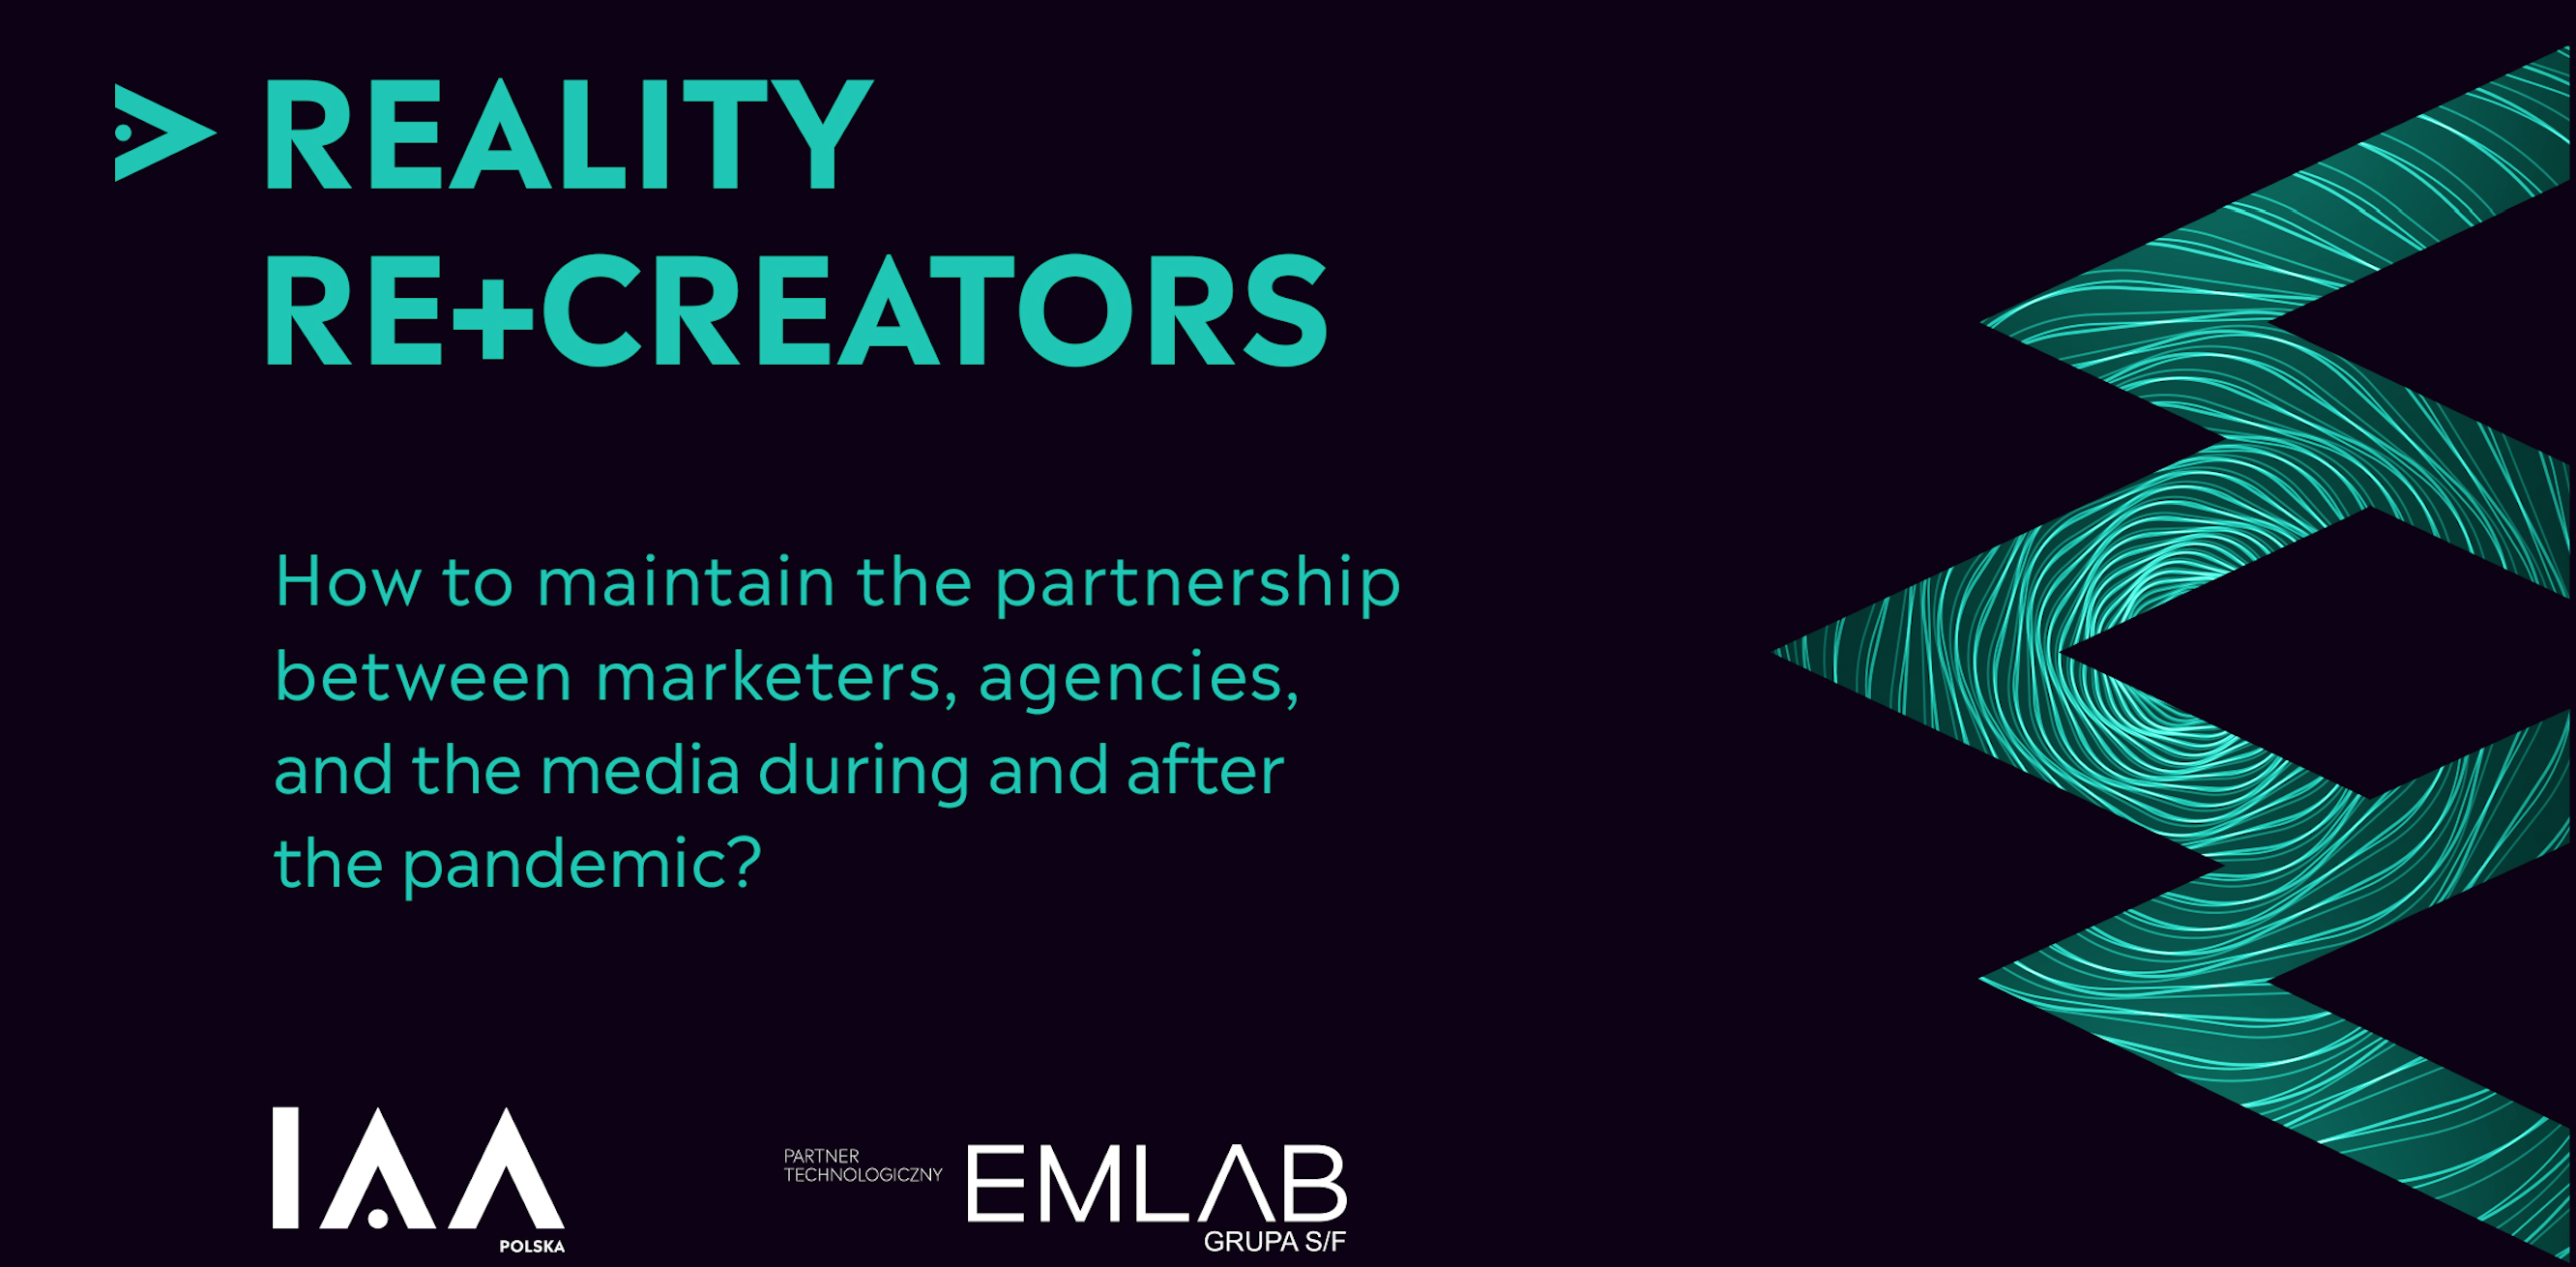 IAA Polska organizes the first interactive Reality Re + Creators discussion panel